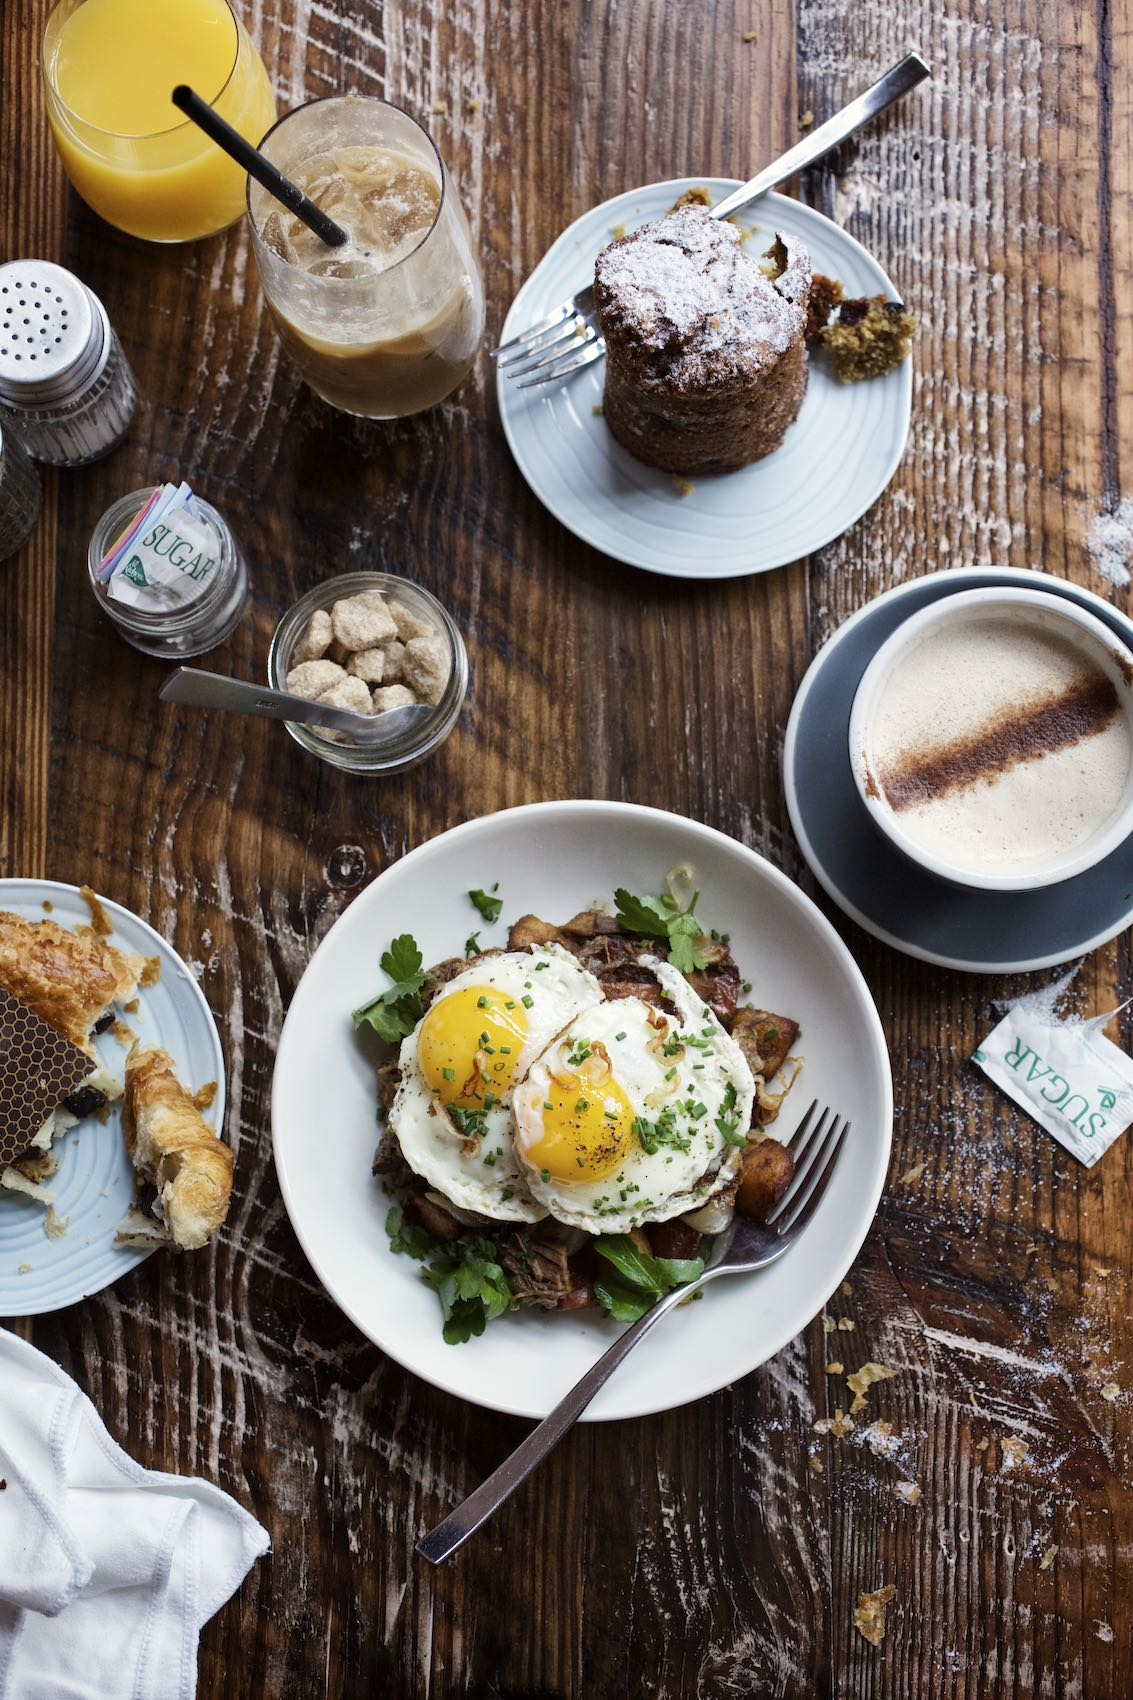 Jody Horton Photography - Breakfast spread and coffees on a wooden table.